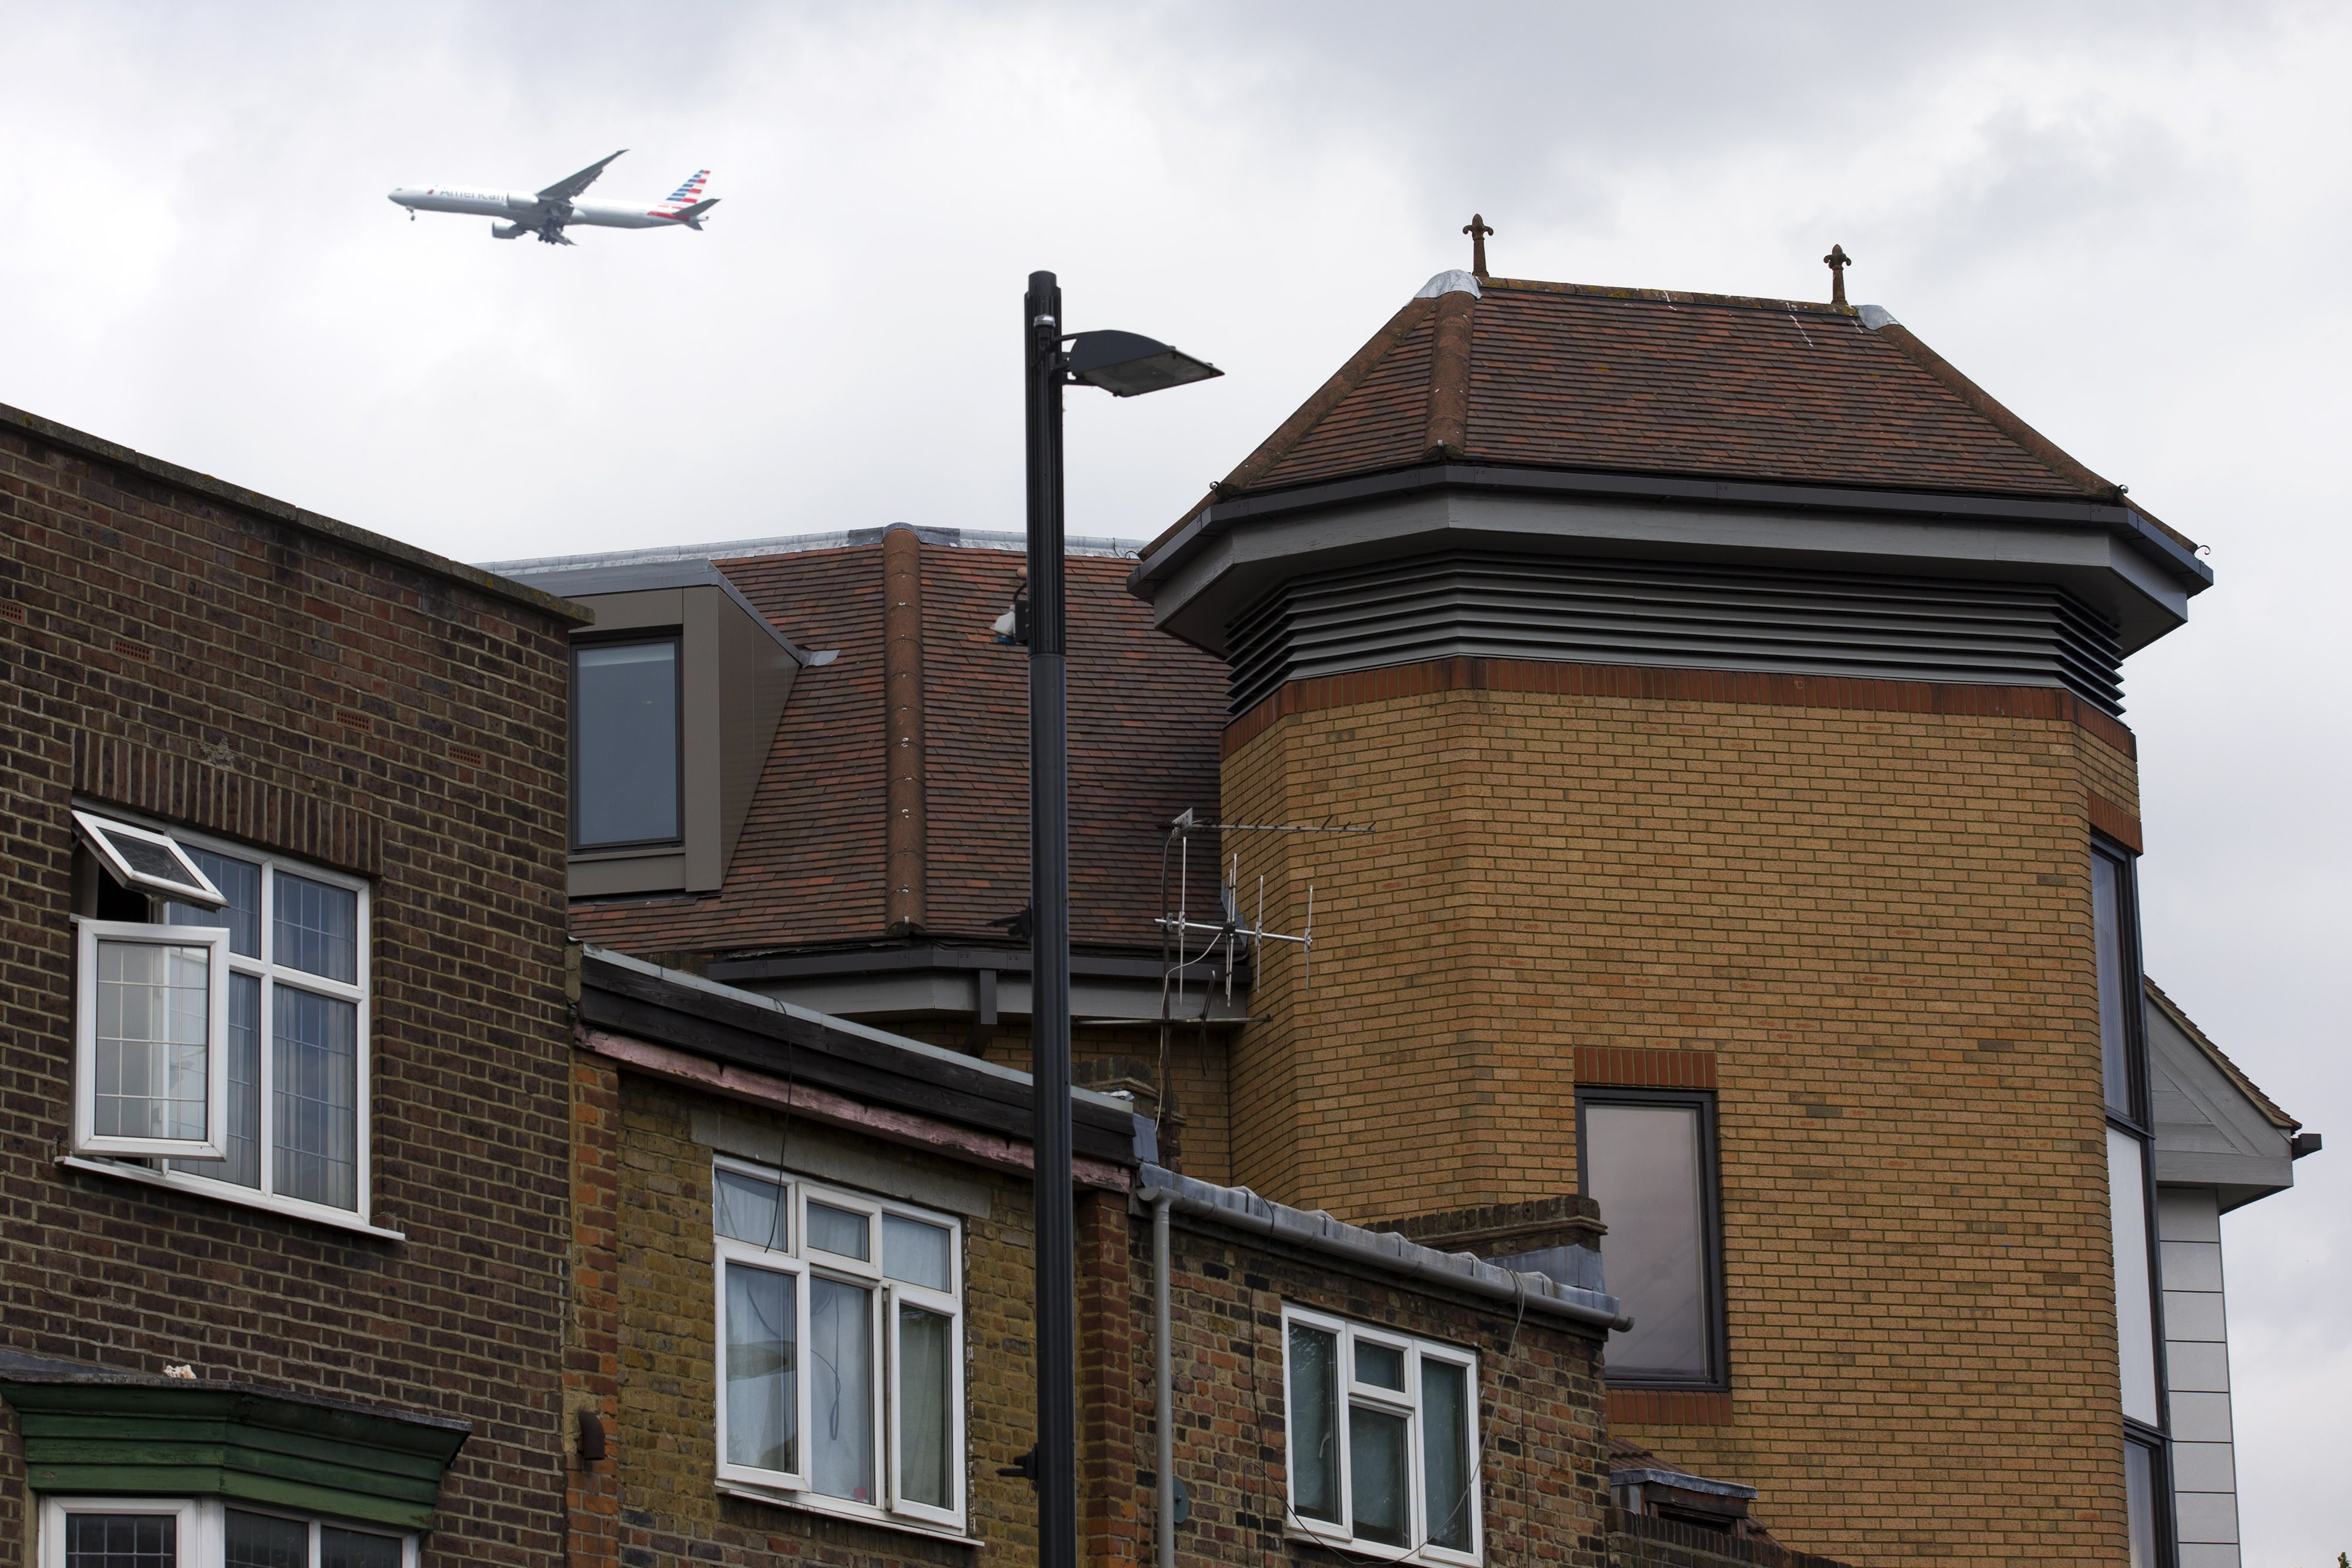 An airplane flying on June 19, 2015, past the offices of notonthehighstreet.com, an online retailer in Richmond, London, where the body of a dead man was found on the roof on June 18